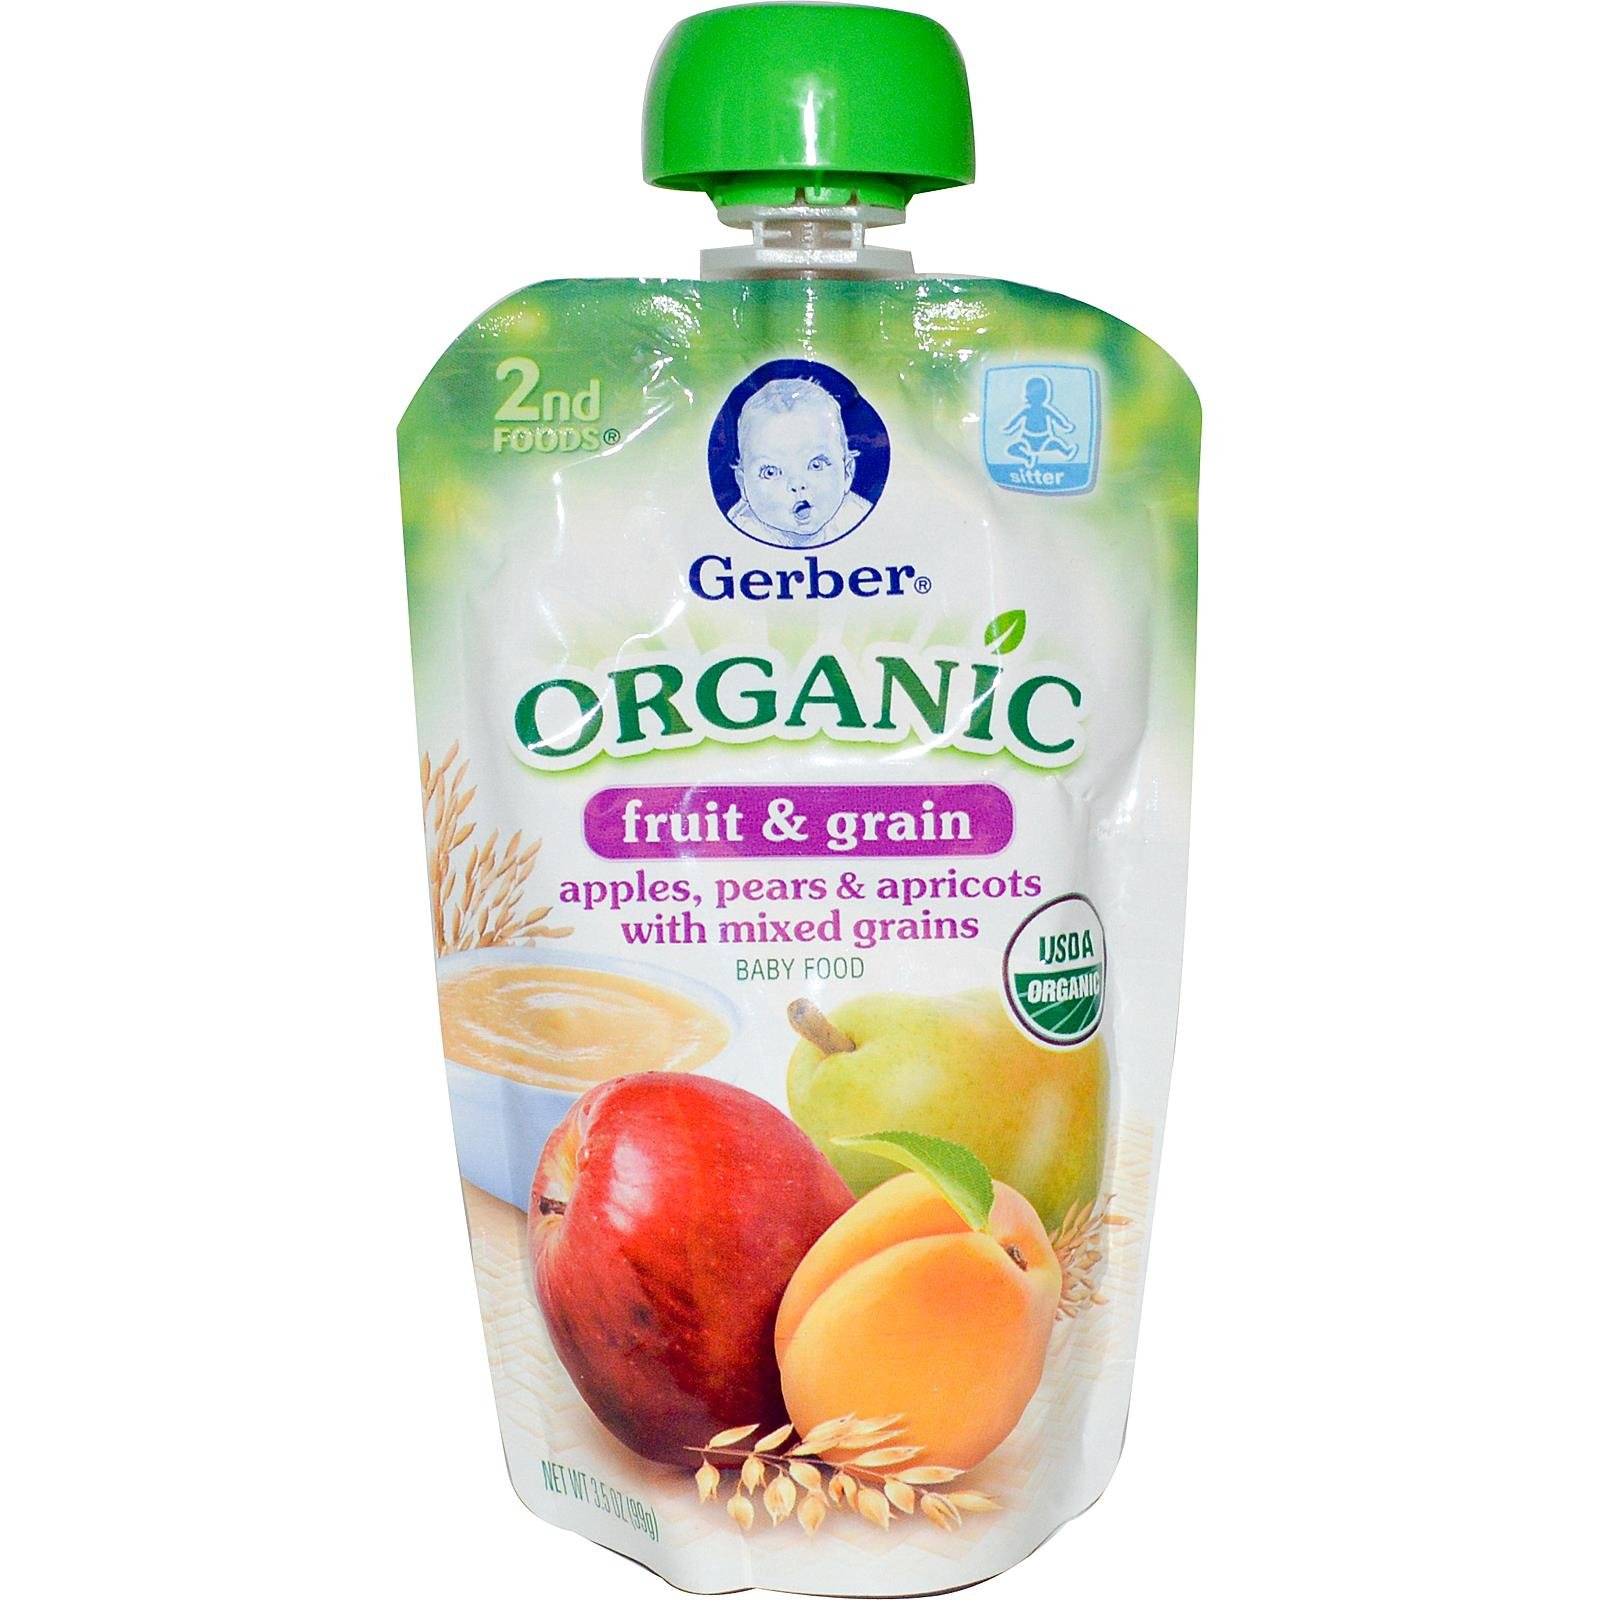 Gerber 2nd Foods,Organic,Baby Food,Fruit & Grain,Apples,Pears & Apricots With Mixed Grains,3.5 Oz (99 G)